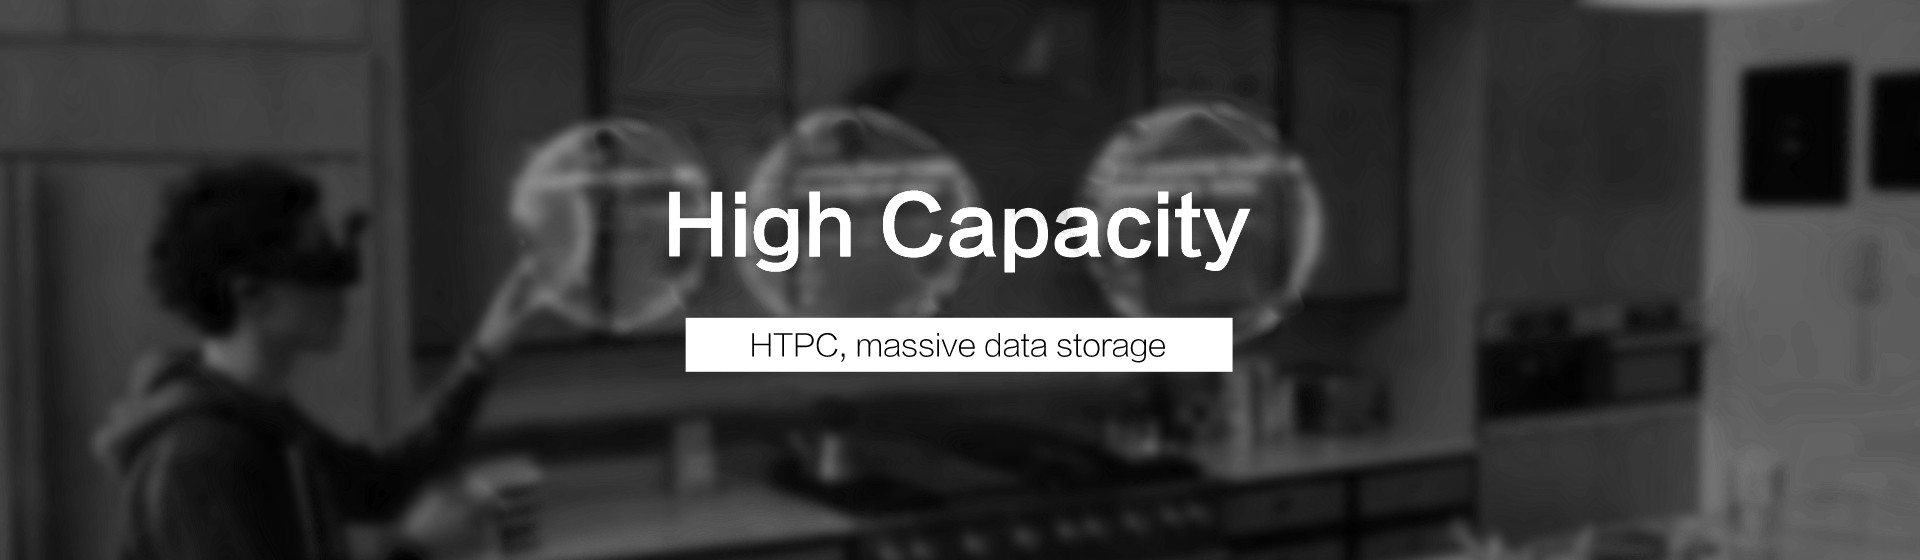 High Capacity Storage